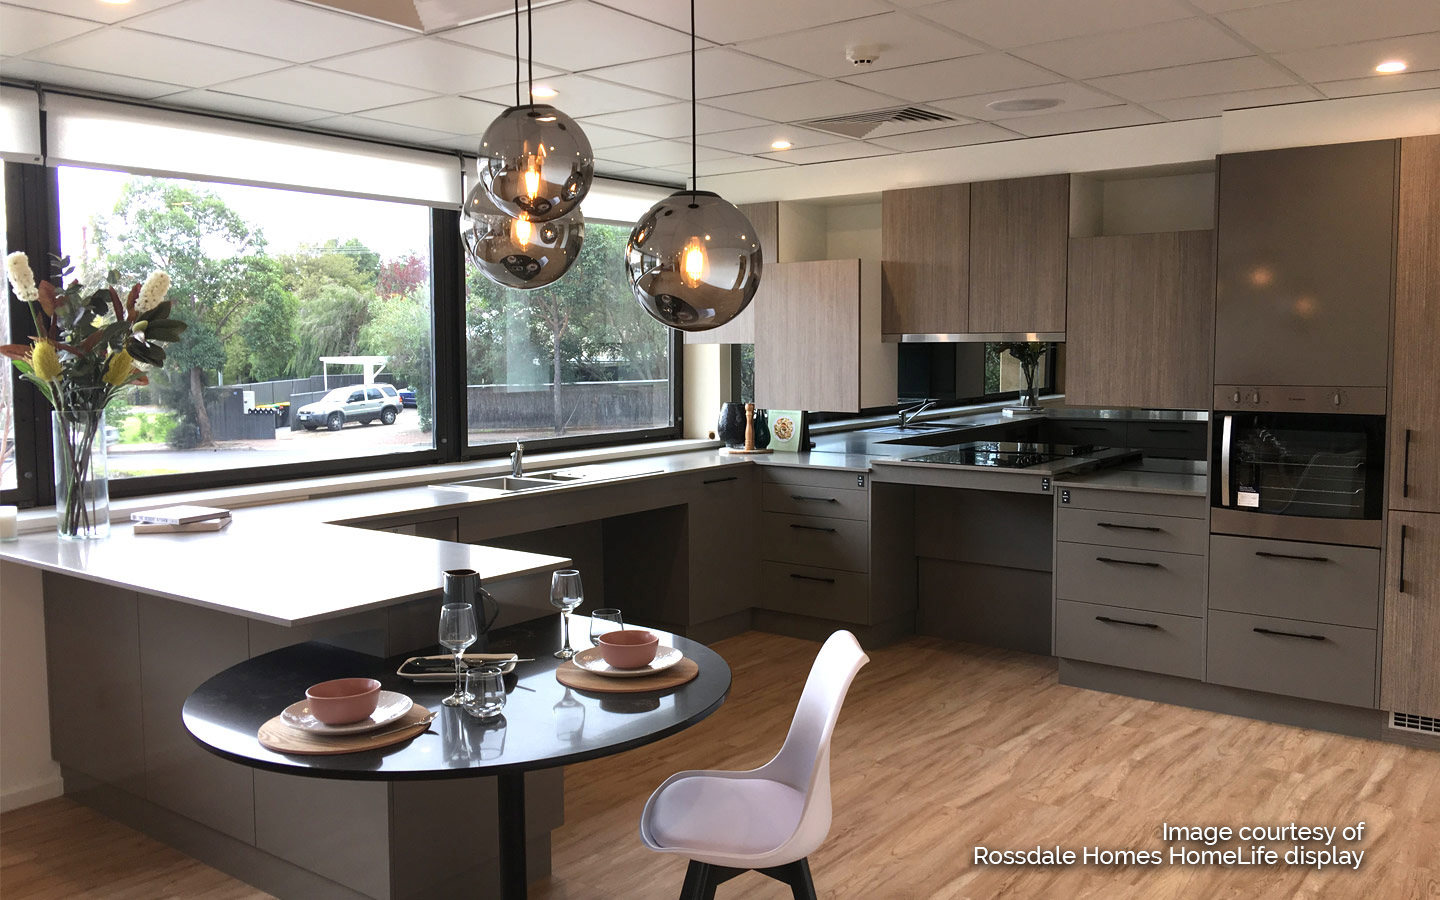 Rossdale homes Kitchen